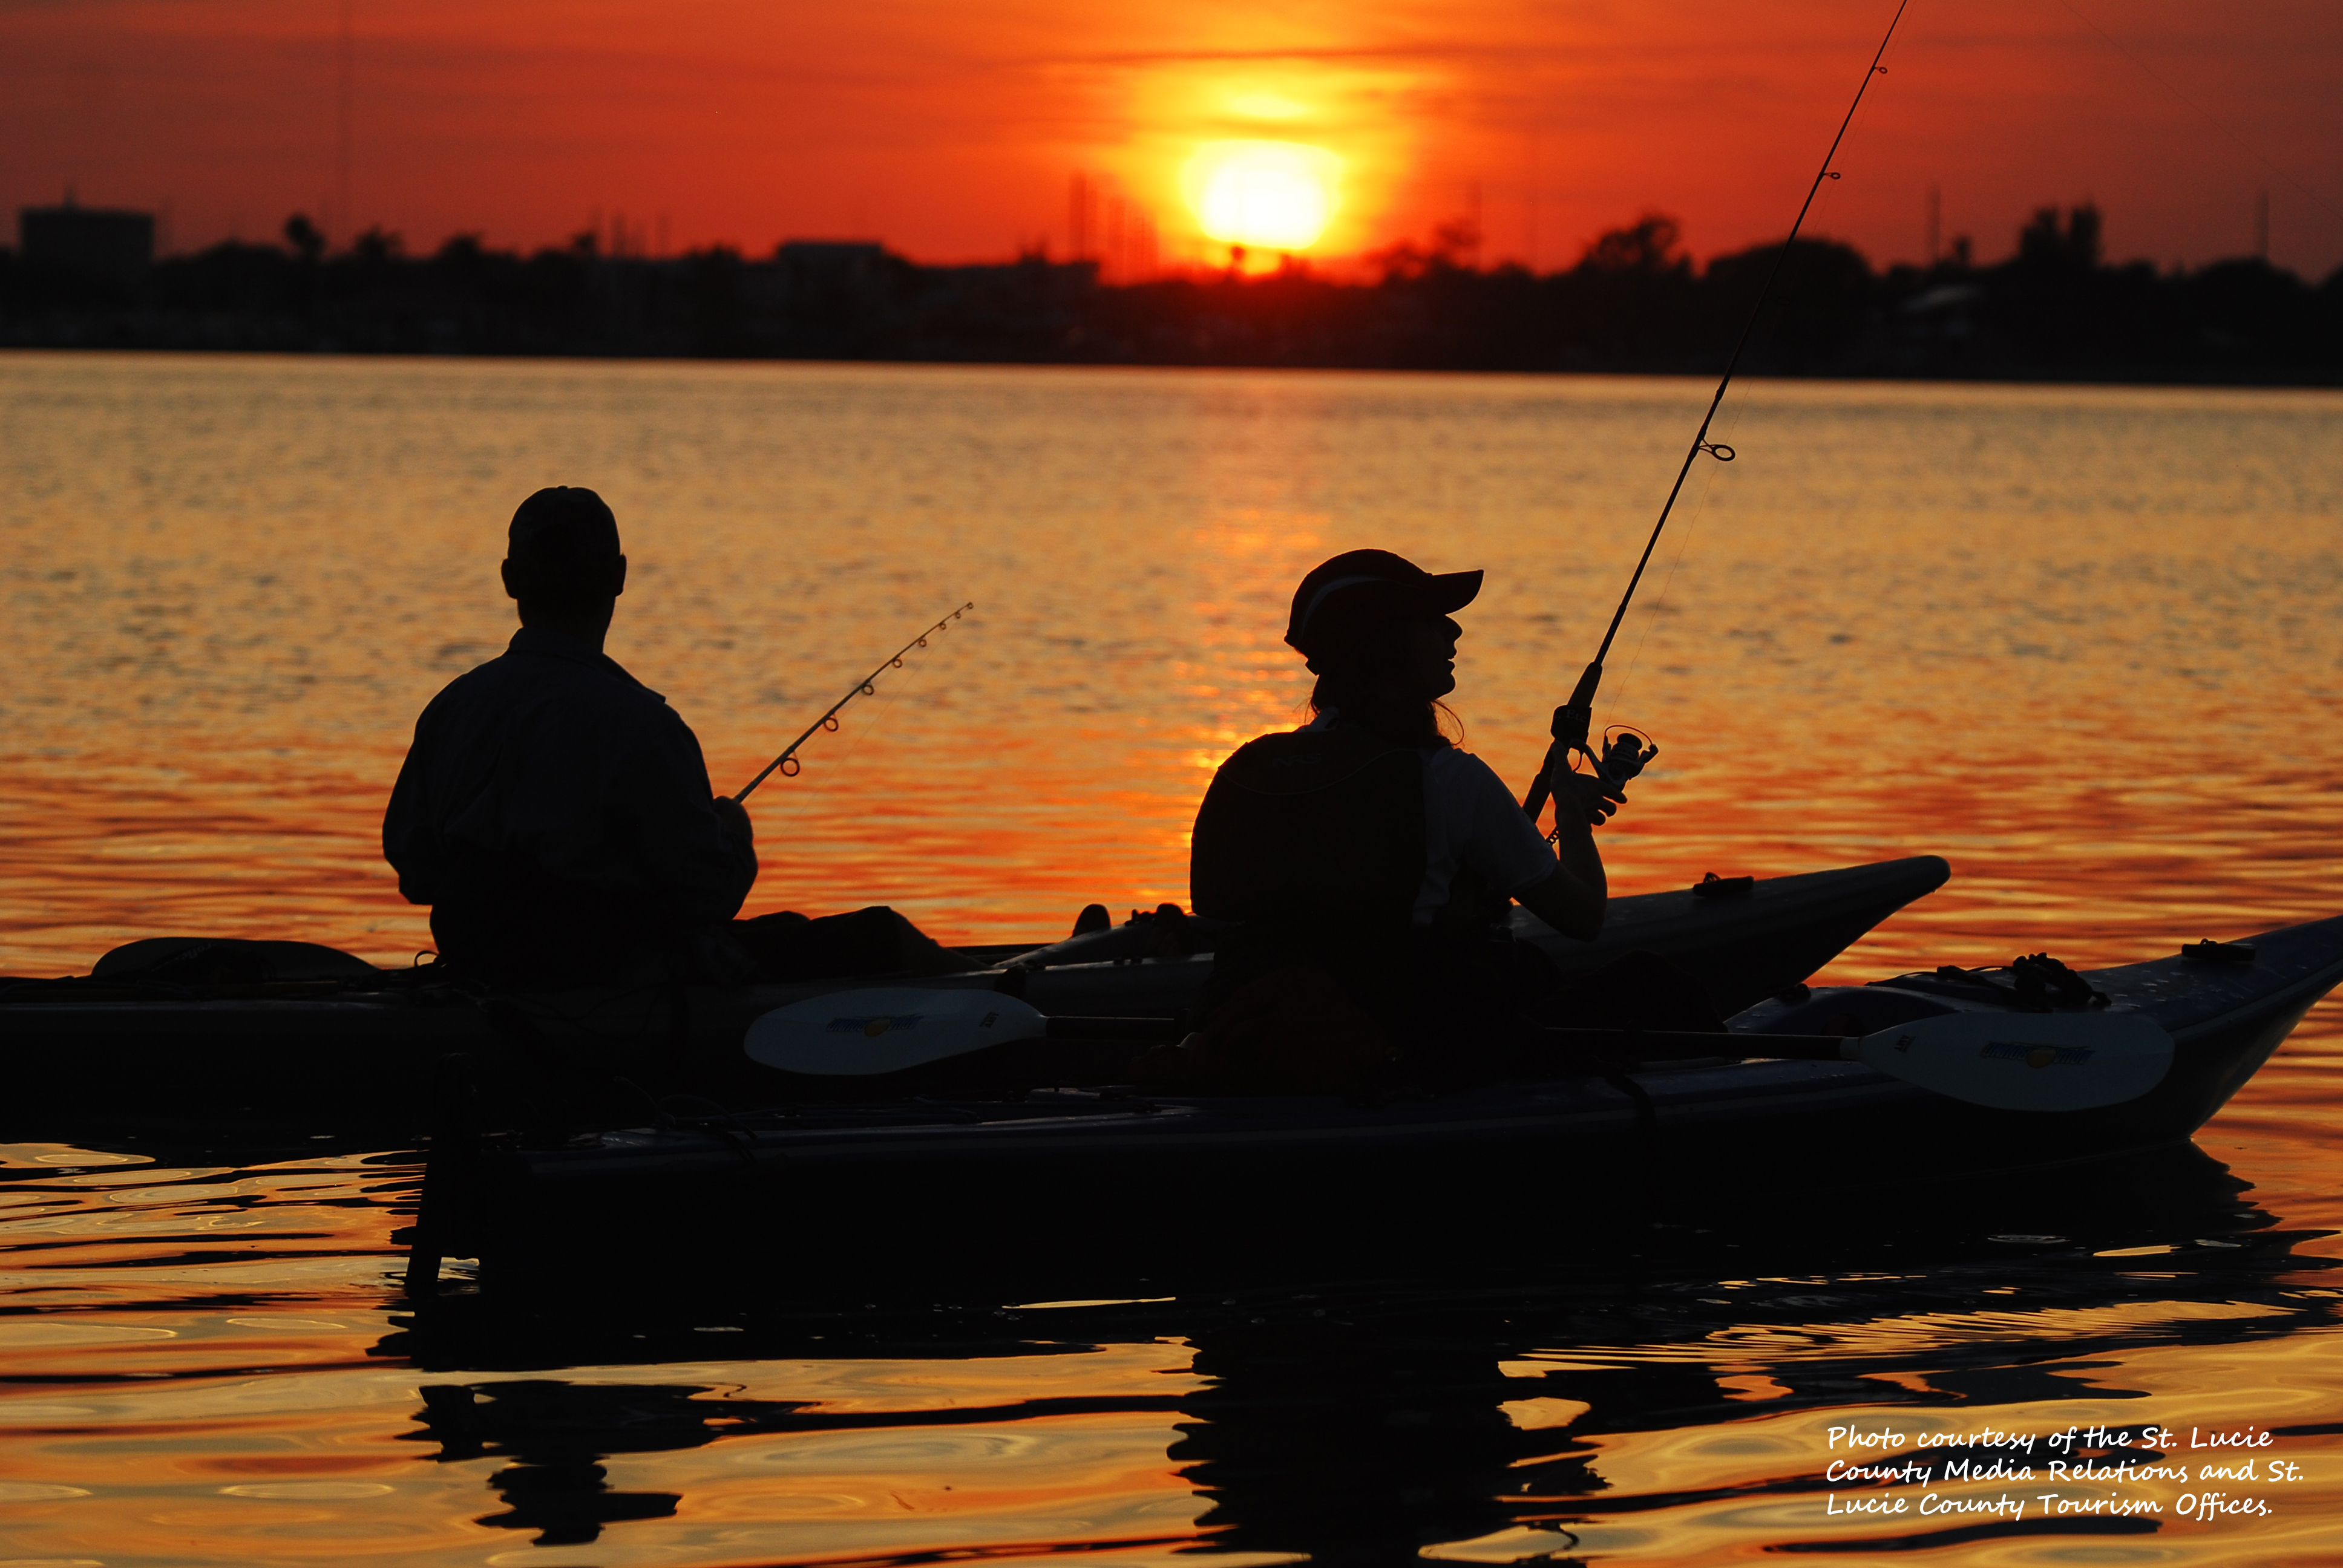 St lucie county tourism downloable images for Indian river fishing